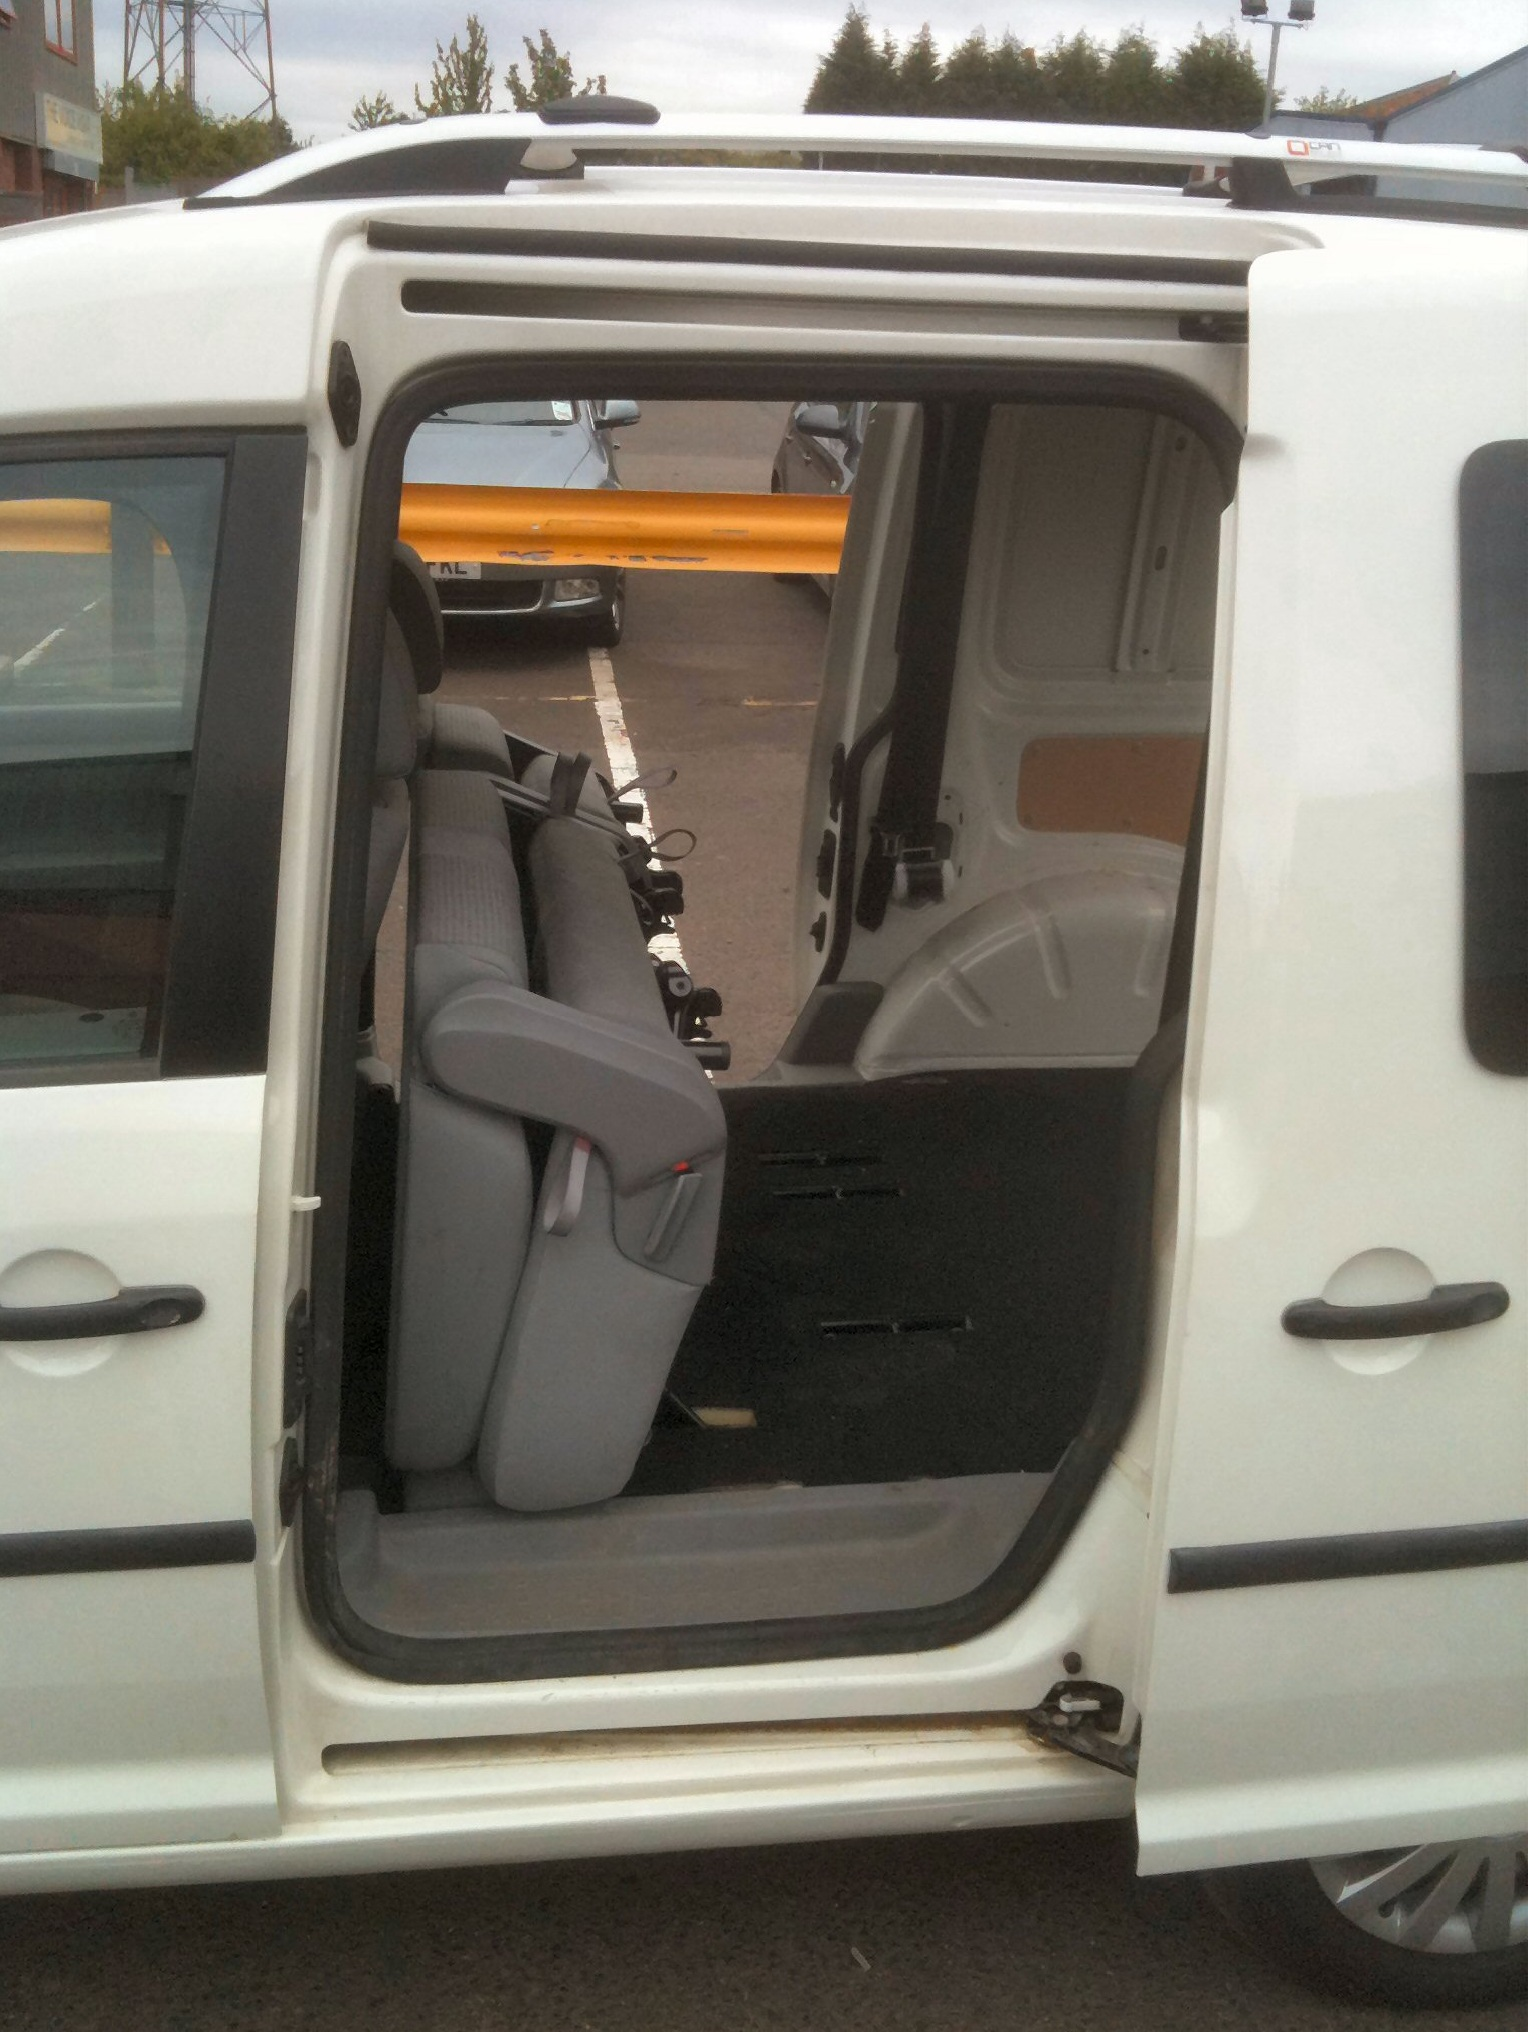 Vw Caddy Conversion Vw Caddy Rear Seat Van Conversion